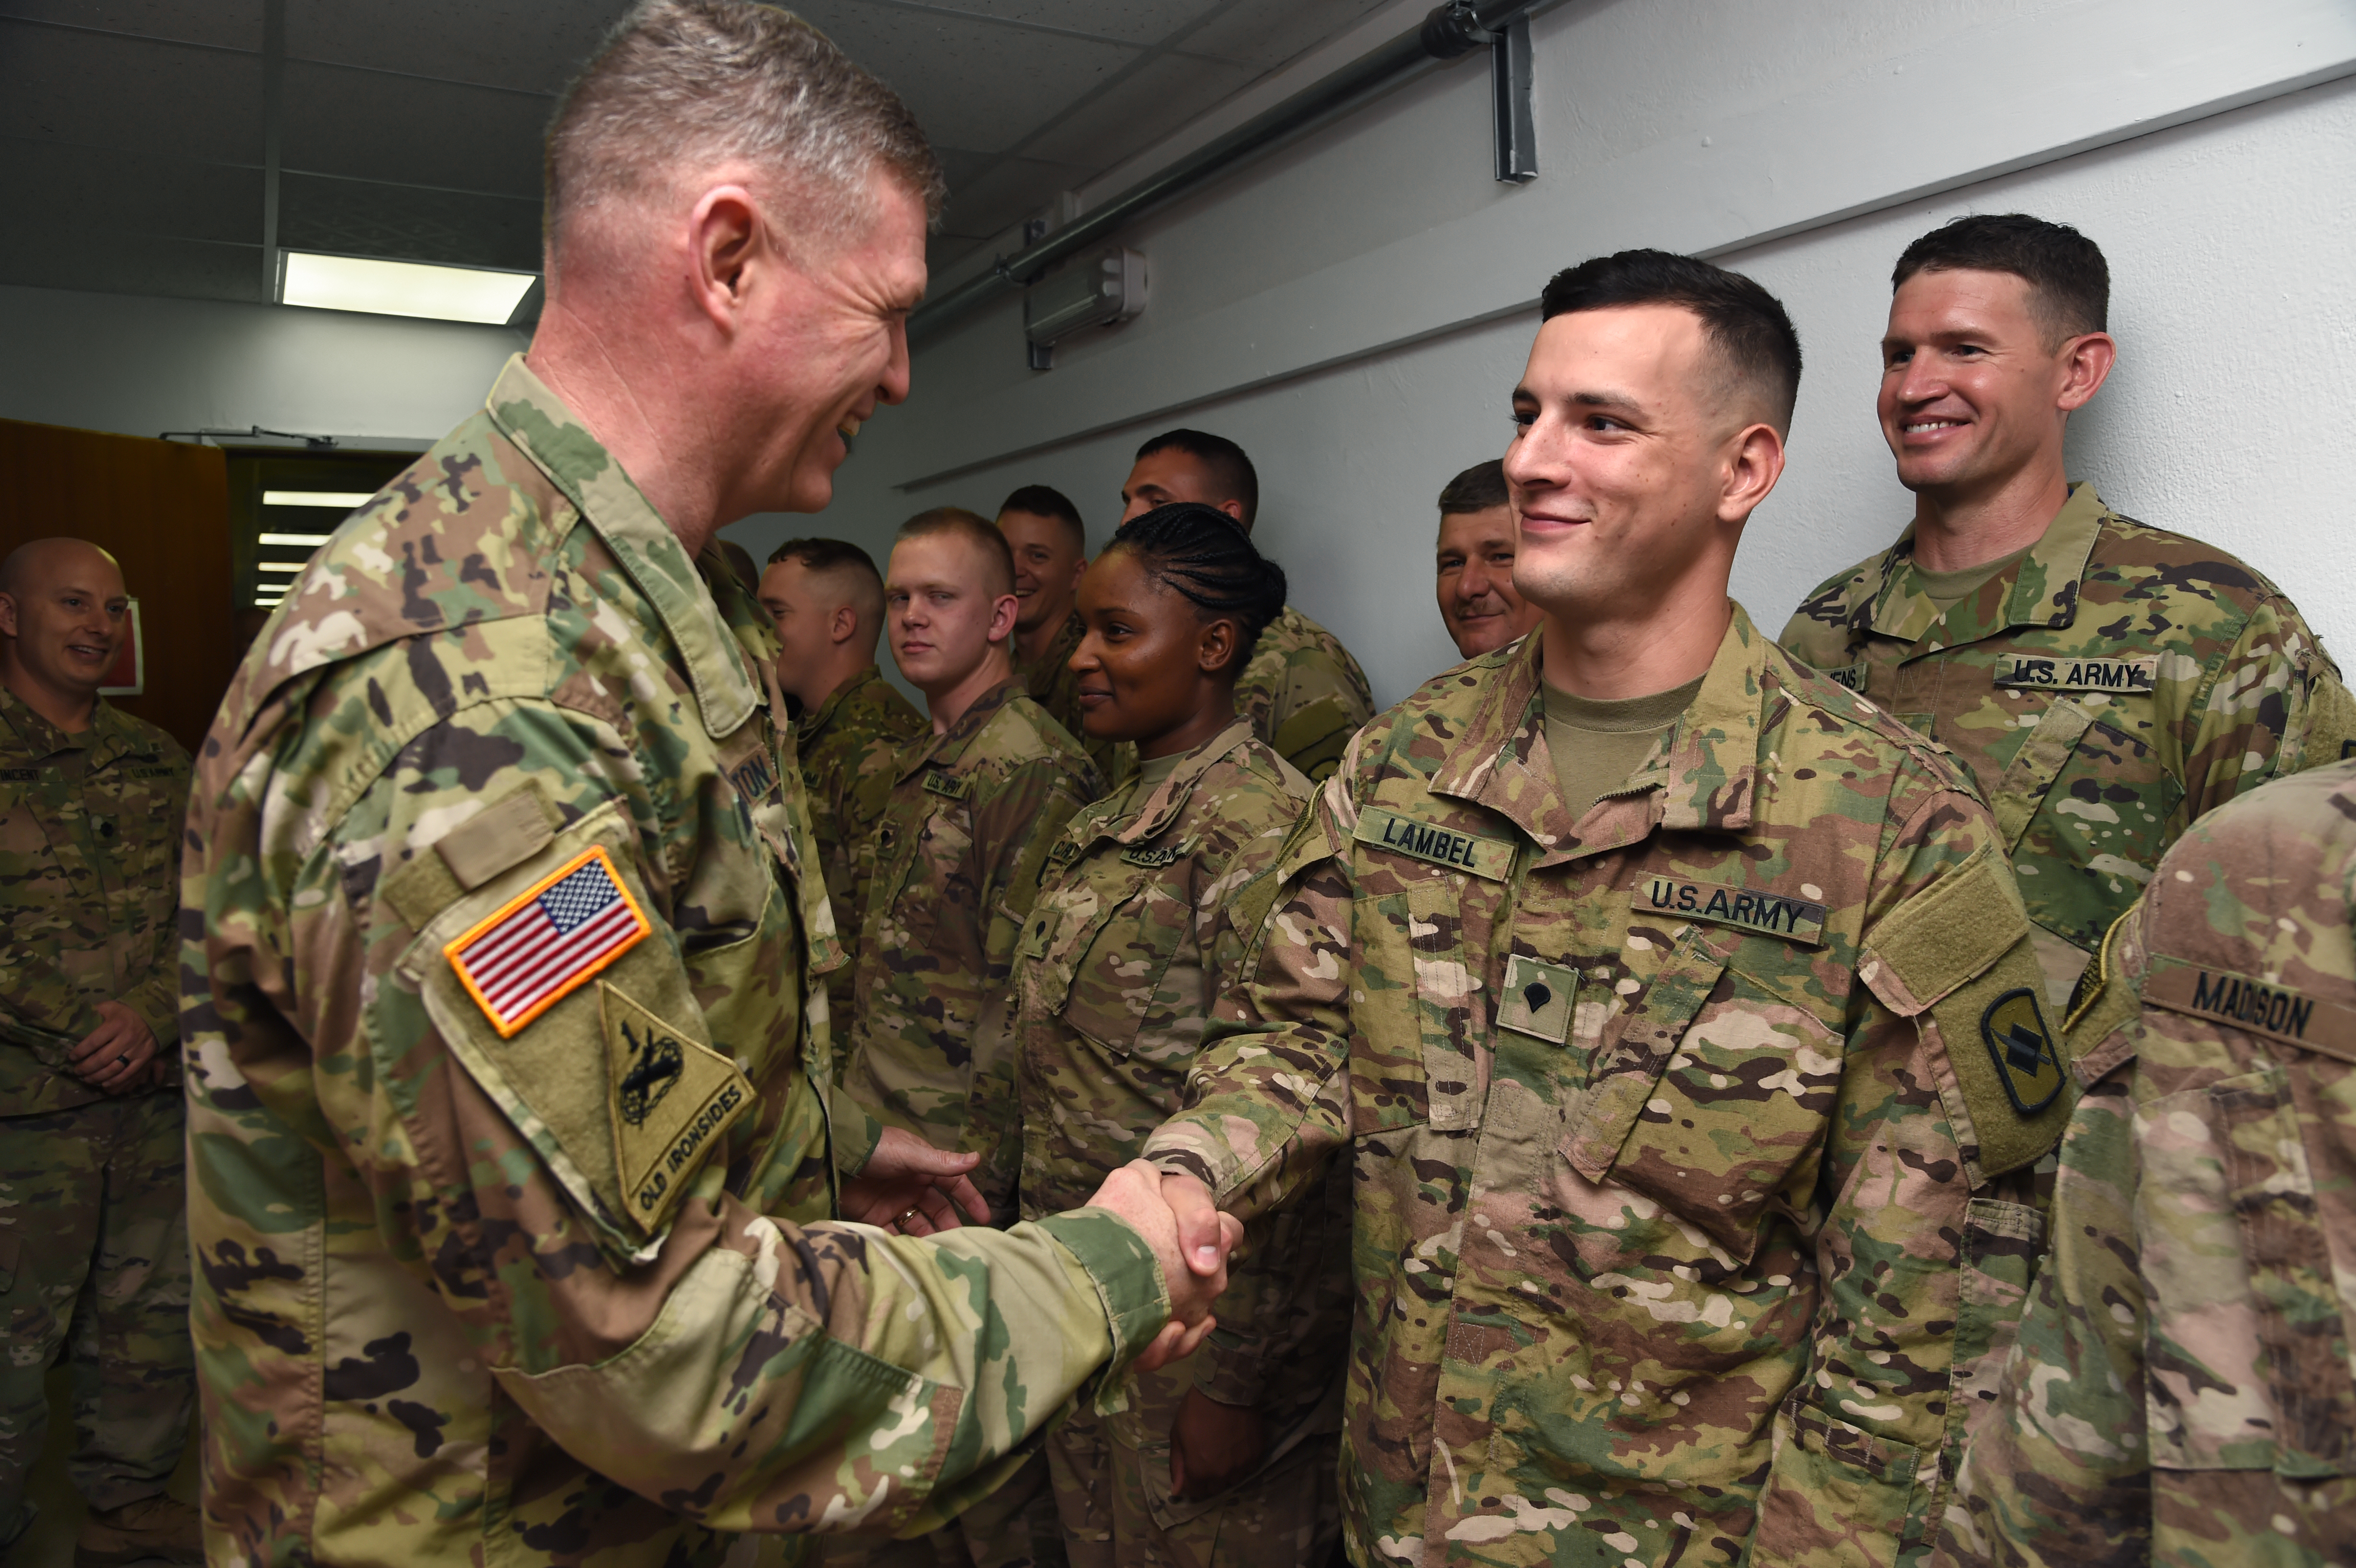 U.S. Army Maj. Gen. Joseph Harrington, commanding general of U.S. Army Africa recognizes Spc. Anthony Lambel for outstanding performance as an infantry team leader for the 1st Battalion, 153rd Infantry Regiment while deployed to Camp Lemonnier, Djibouti, March 22, 2017. Harrington's visit included the opportunity to meet with Camp Lemonnier and Combined Joint Task Force-Horn of Africa leadership, as well as recognize numerous deployed Soldiers identified as superior performers while serving in the Horn of Africa. (U.S. Air National Guard photo by Master Sgt. Paul Gorman)